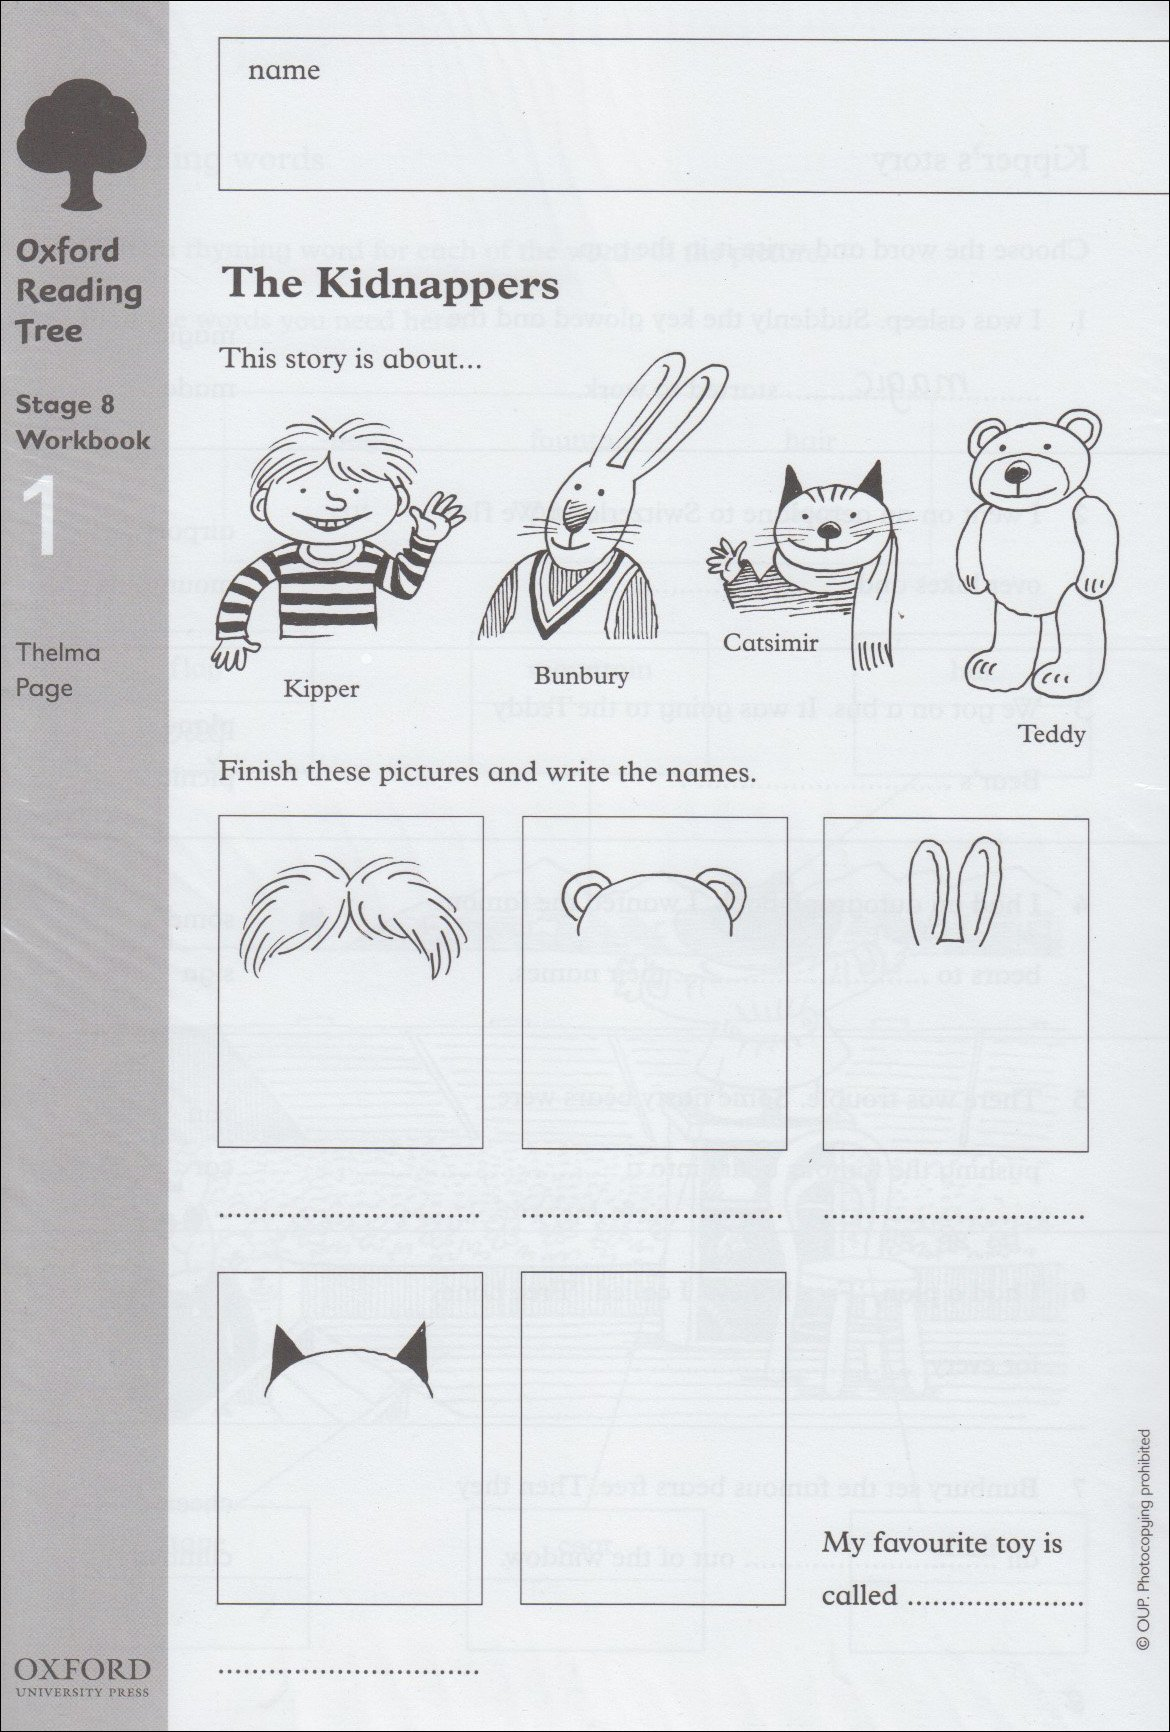 The Flying Carpet Oxford Reading Tree Worksheets Carpet